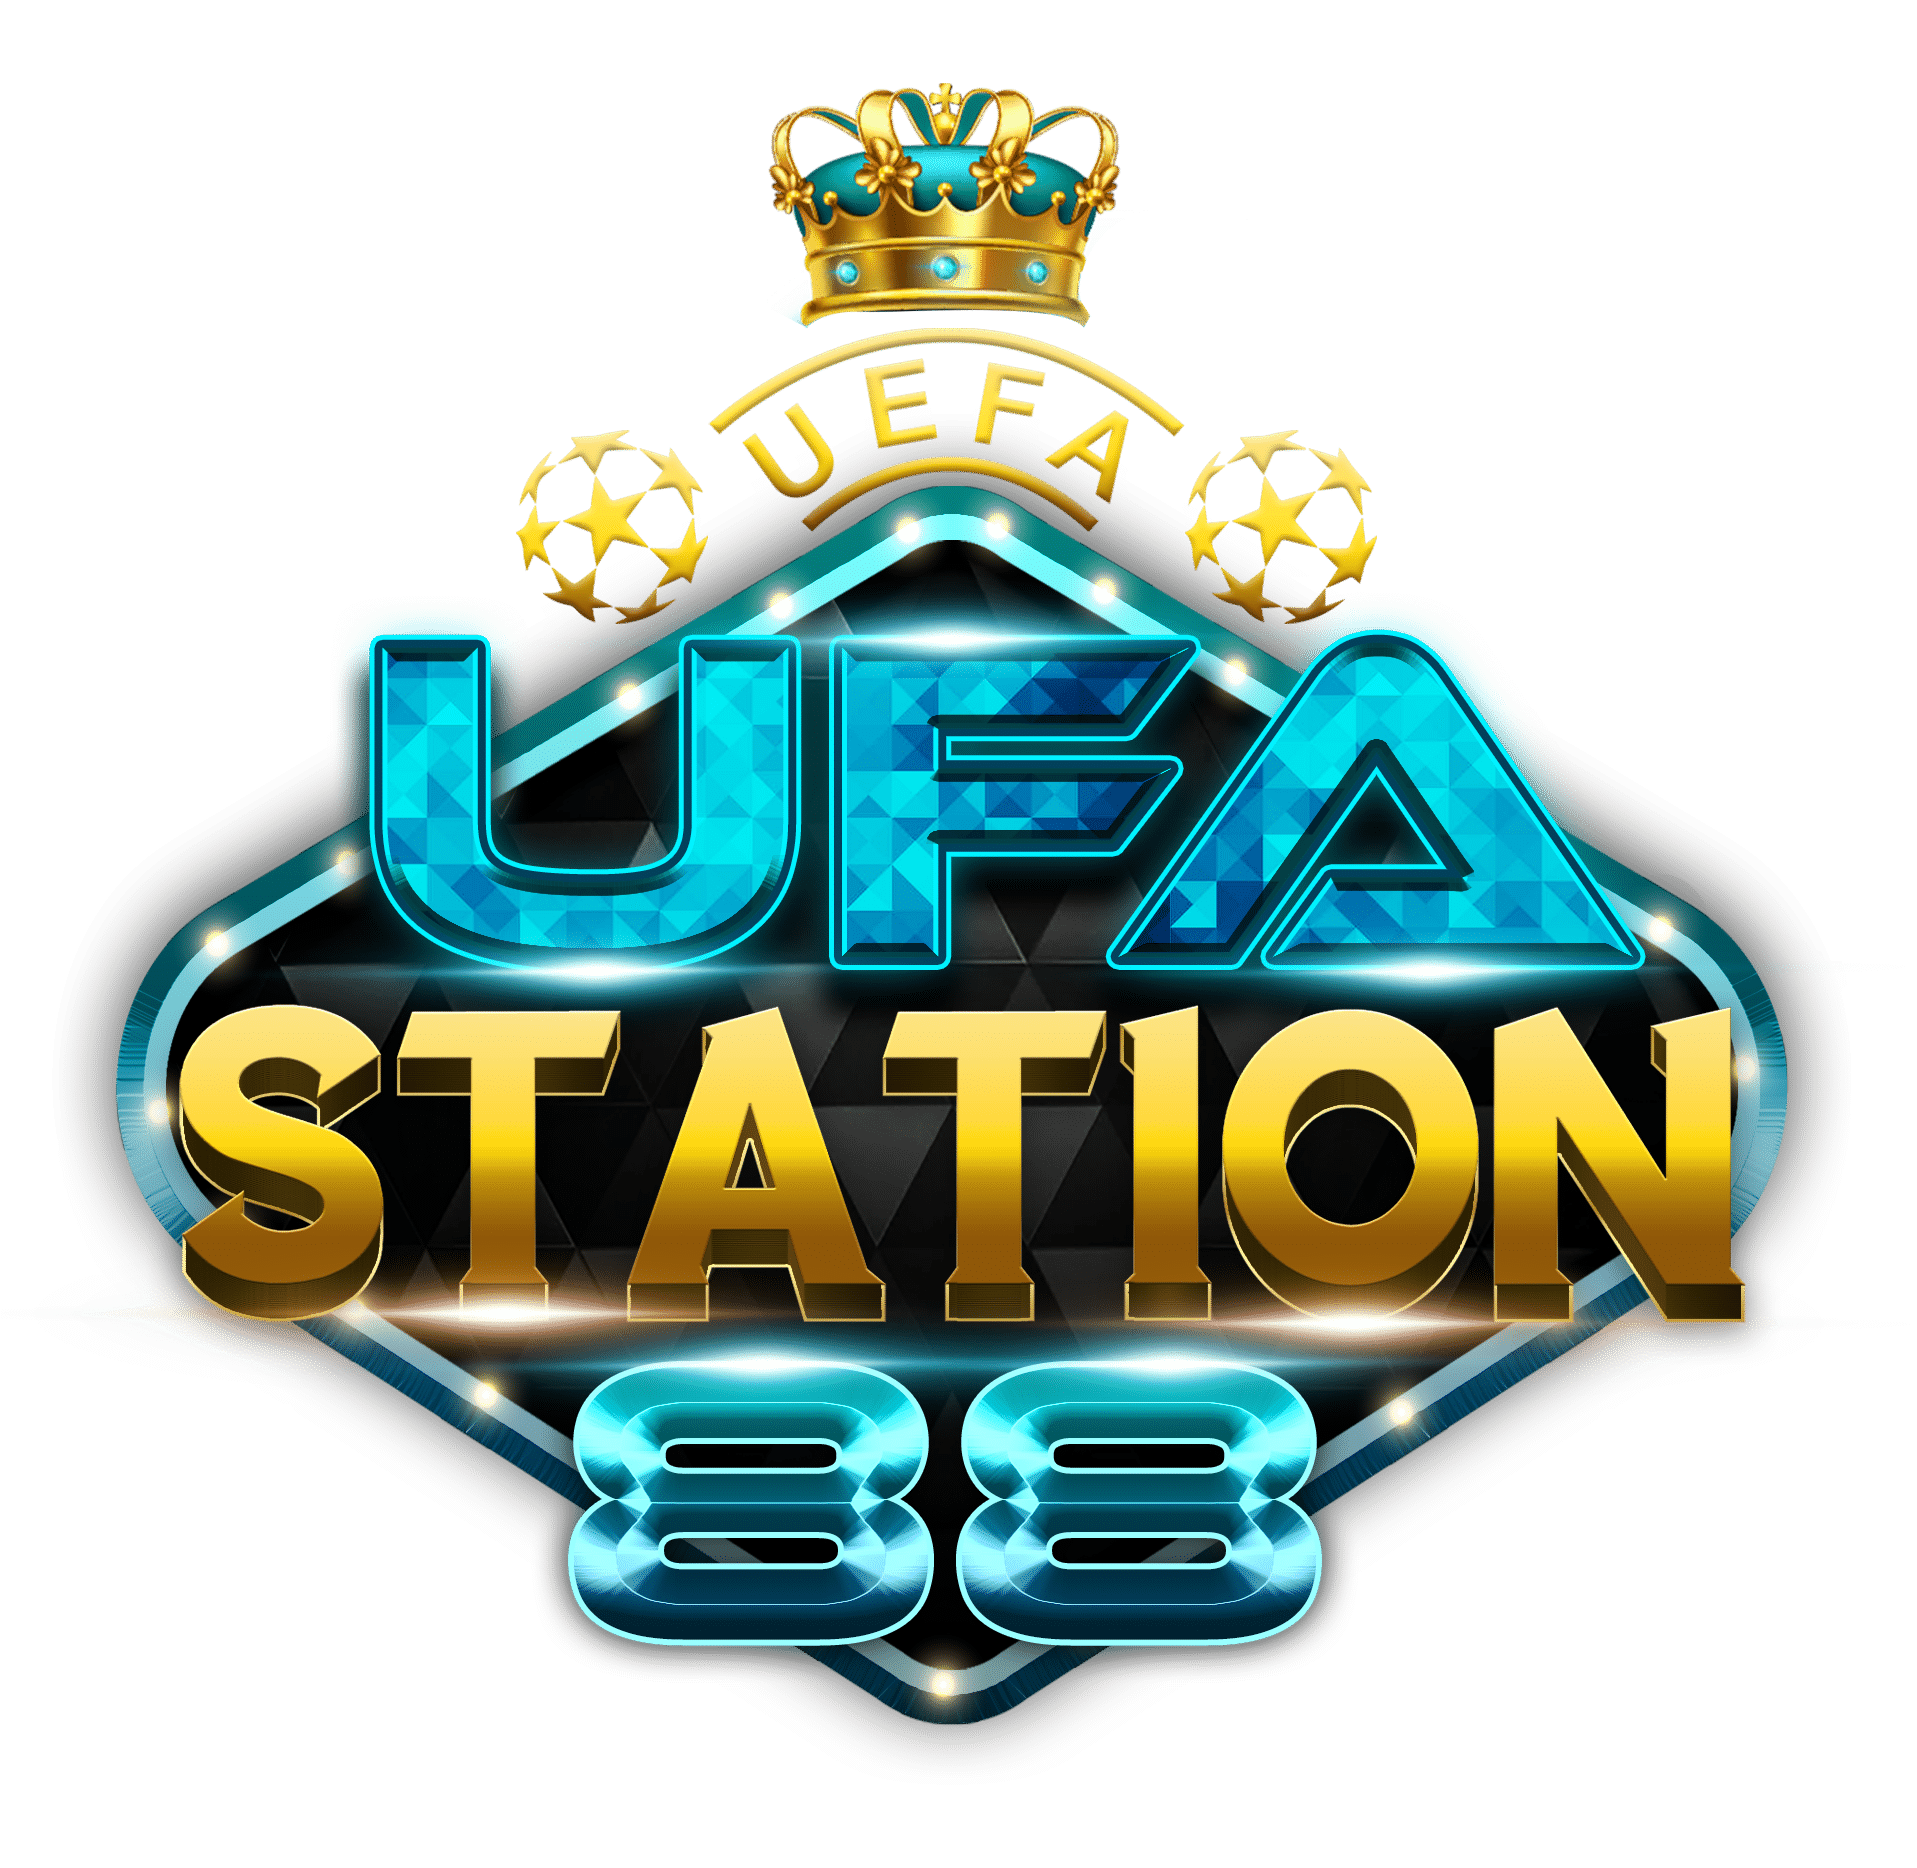 UFASTATION88